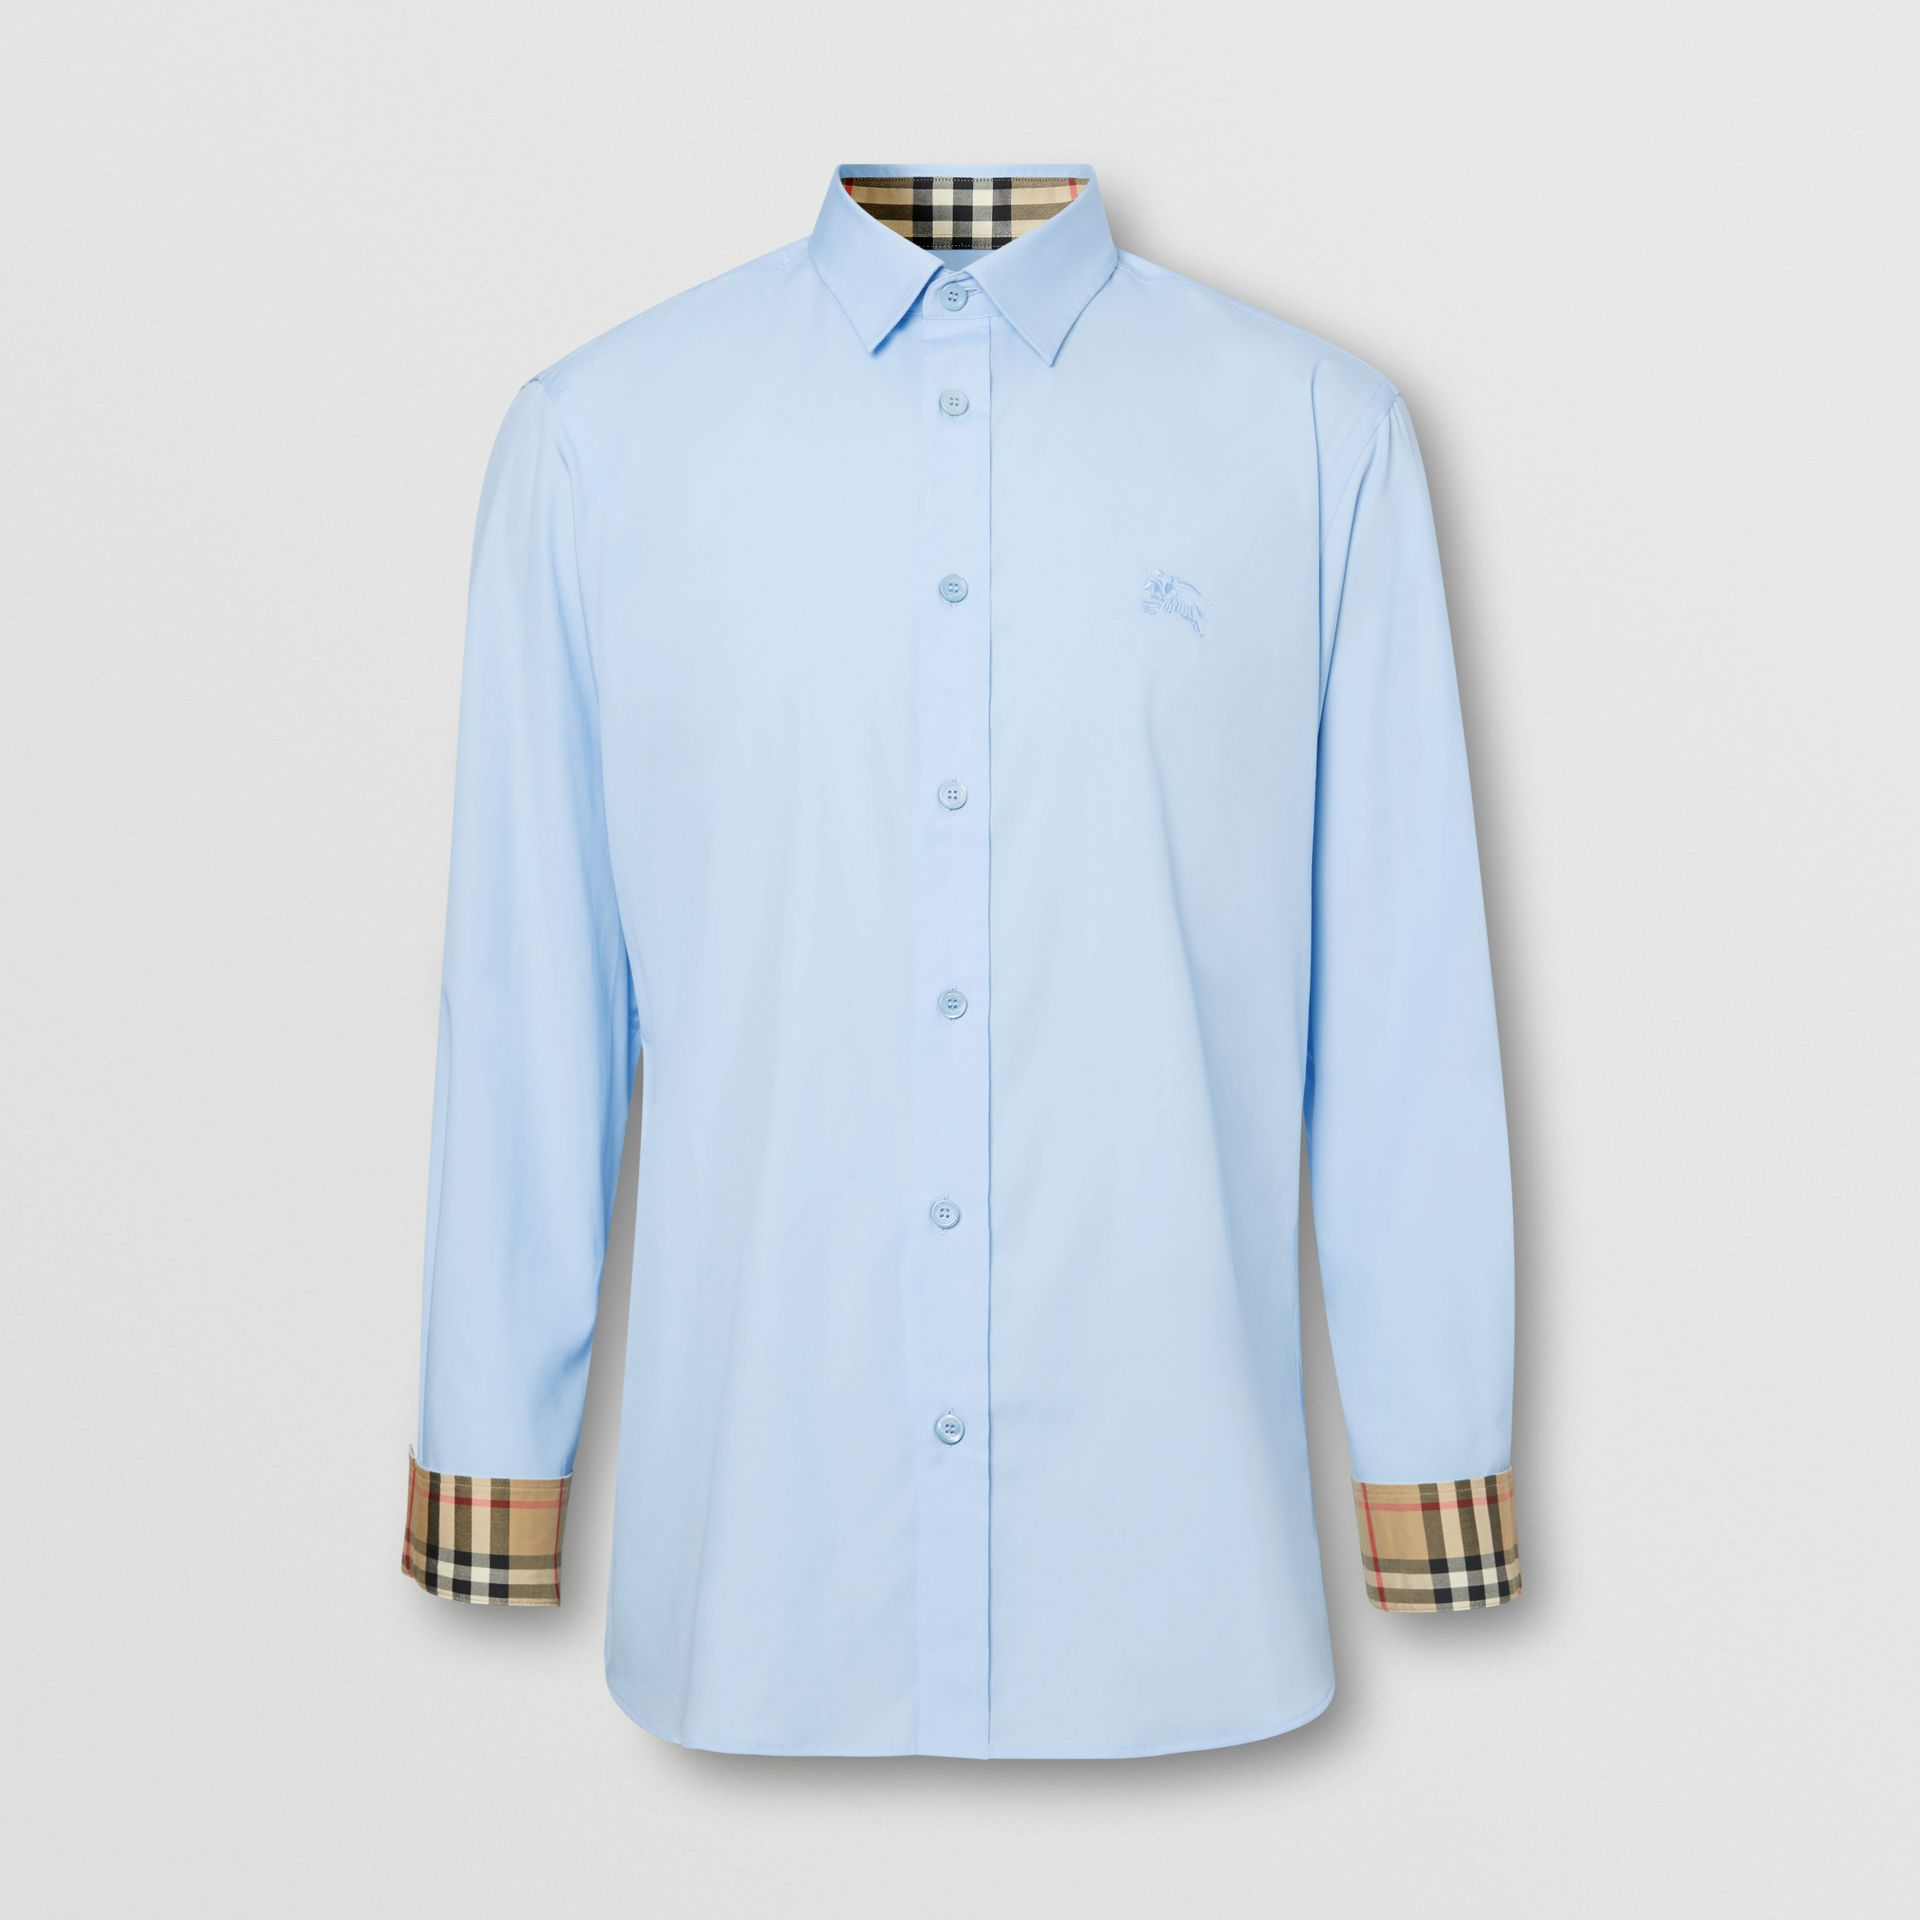 Classic Fit Embroidered EKD Cotton Oxford Shirt in Sky Blue - Men | Burberry - gallery image 3